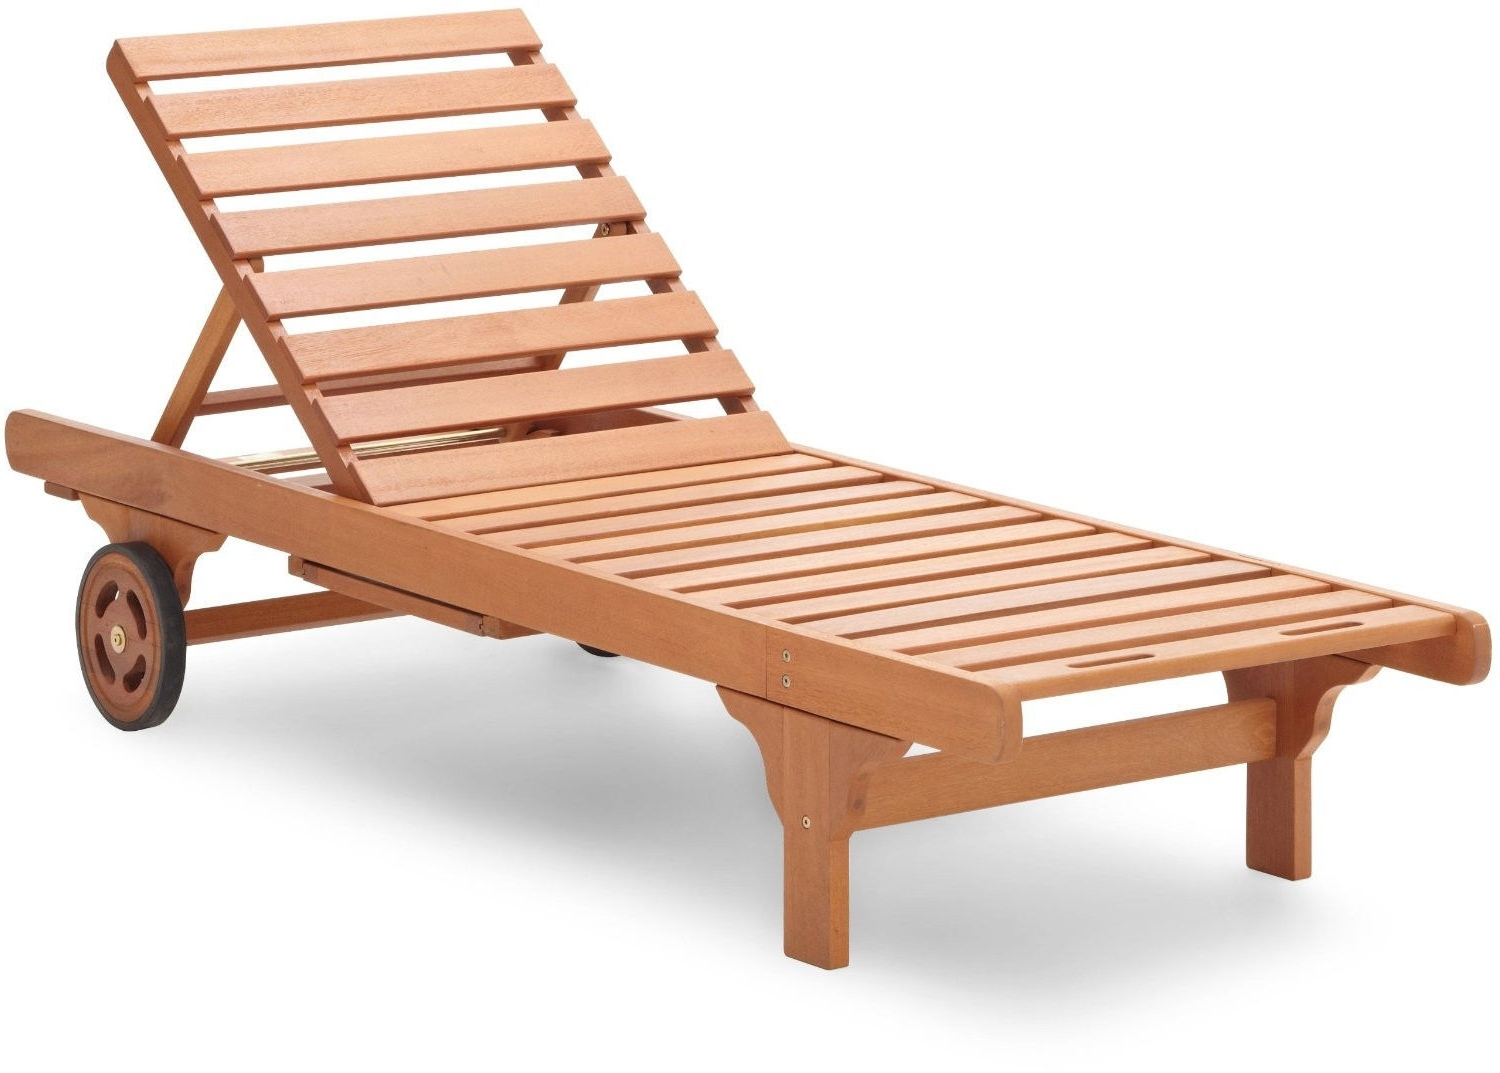 Hardwood Chaise Lounge Chairs Within Best And Newest Wood Chaise Lounge Chairs • Lounge Chairs Ideas (View 3 of 15)